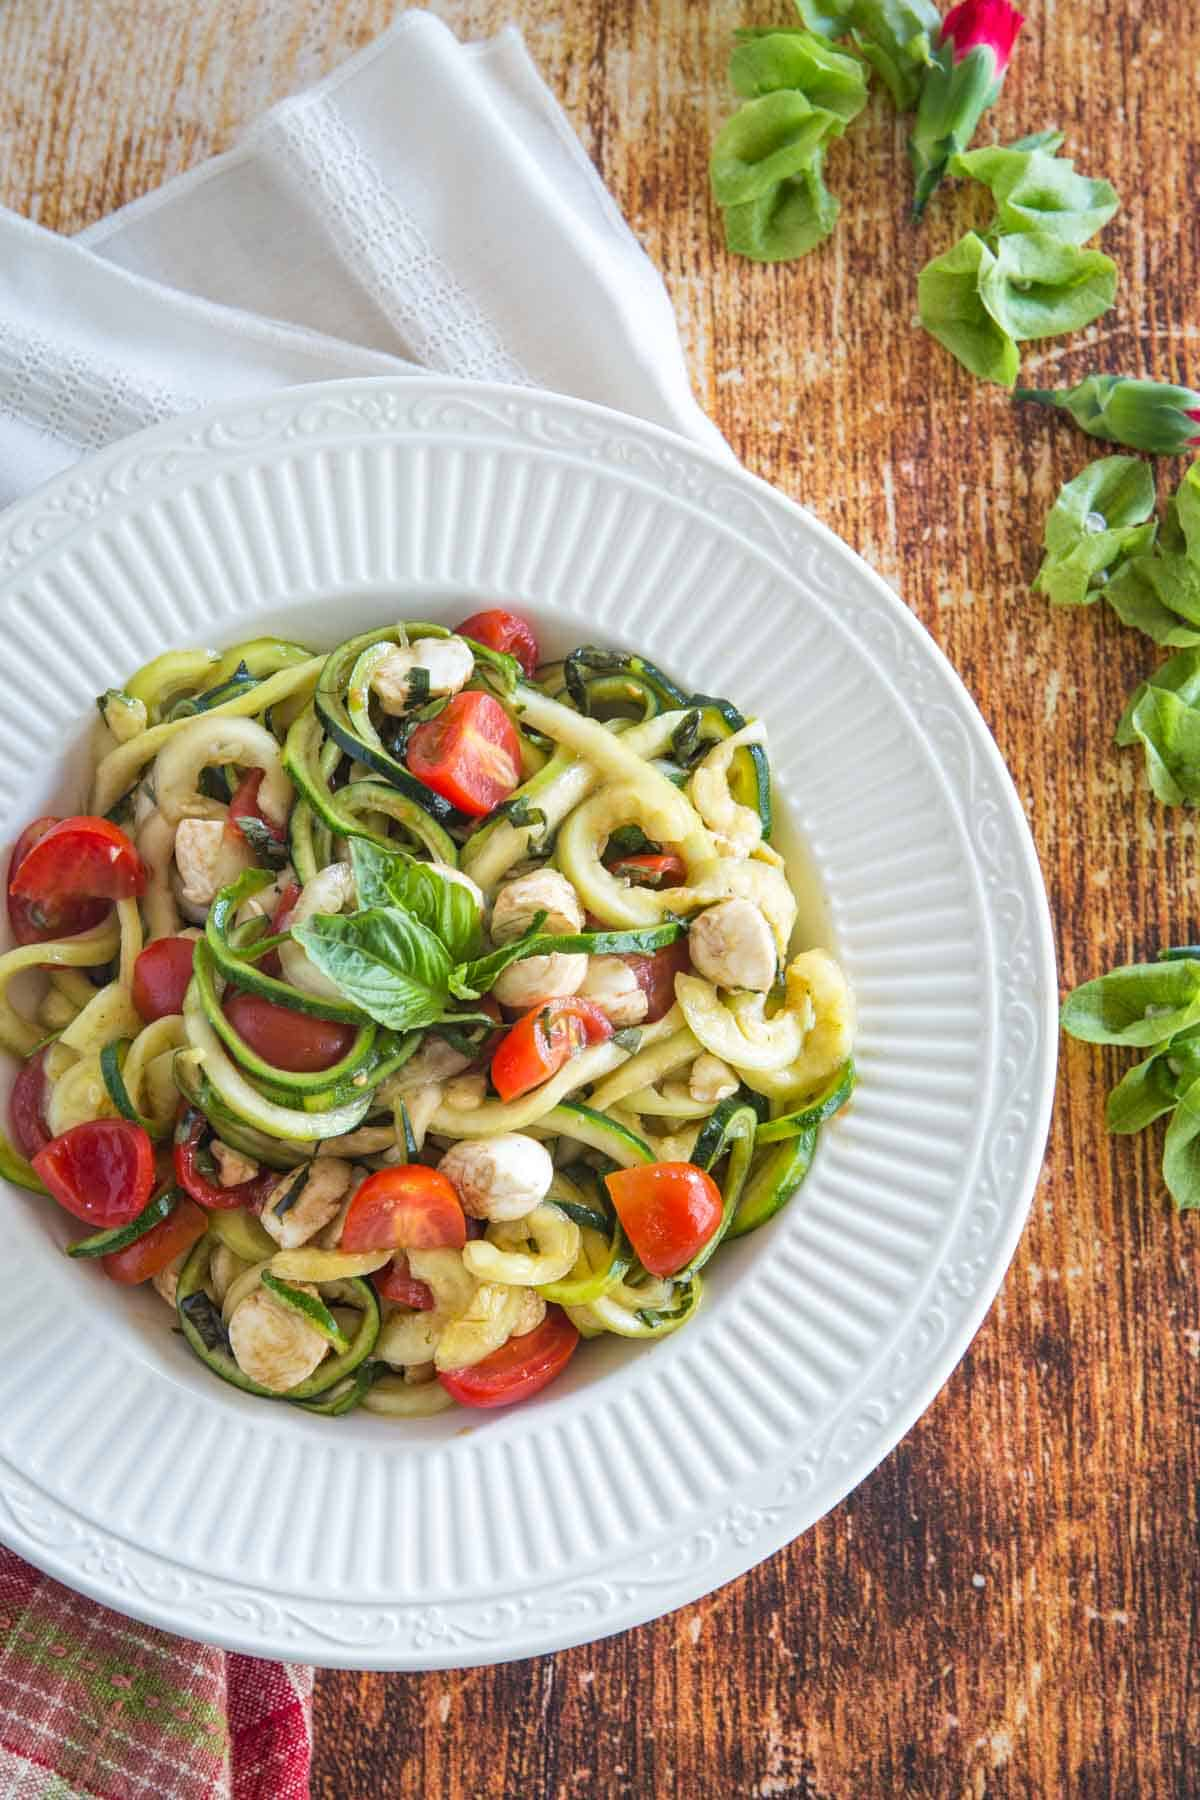 zoodles caprese salad in a serving bowl on a wooden tabletop next to a red plaid napkin